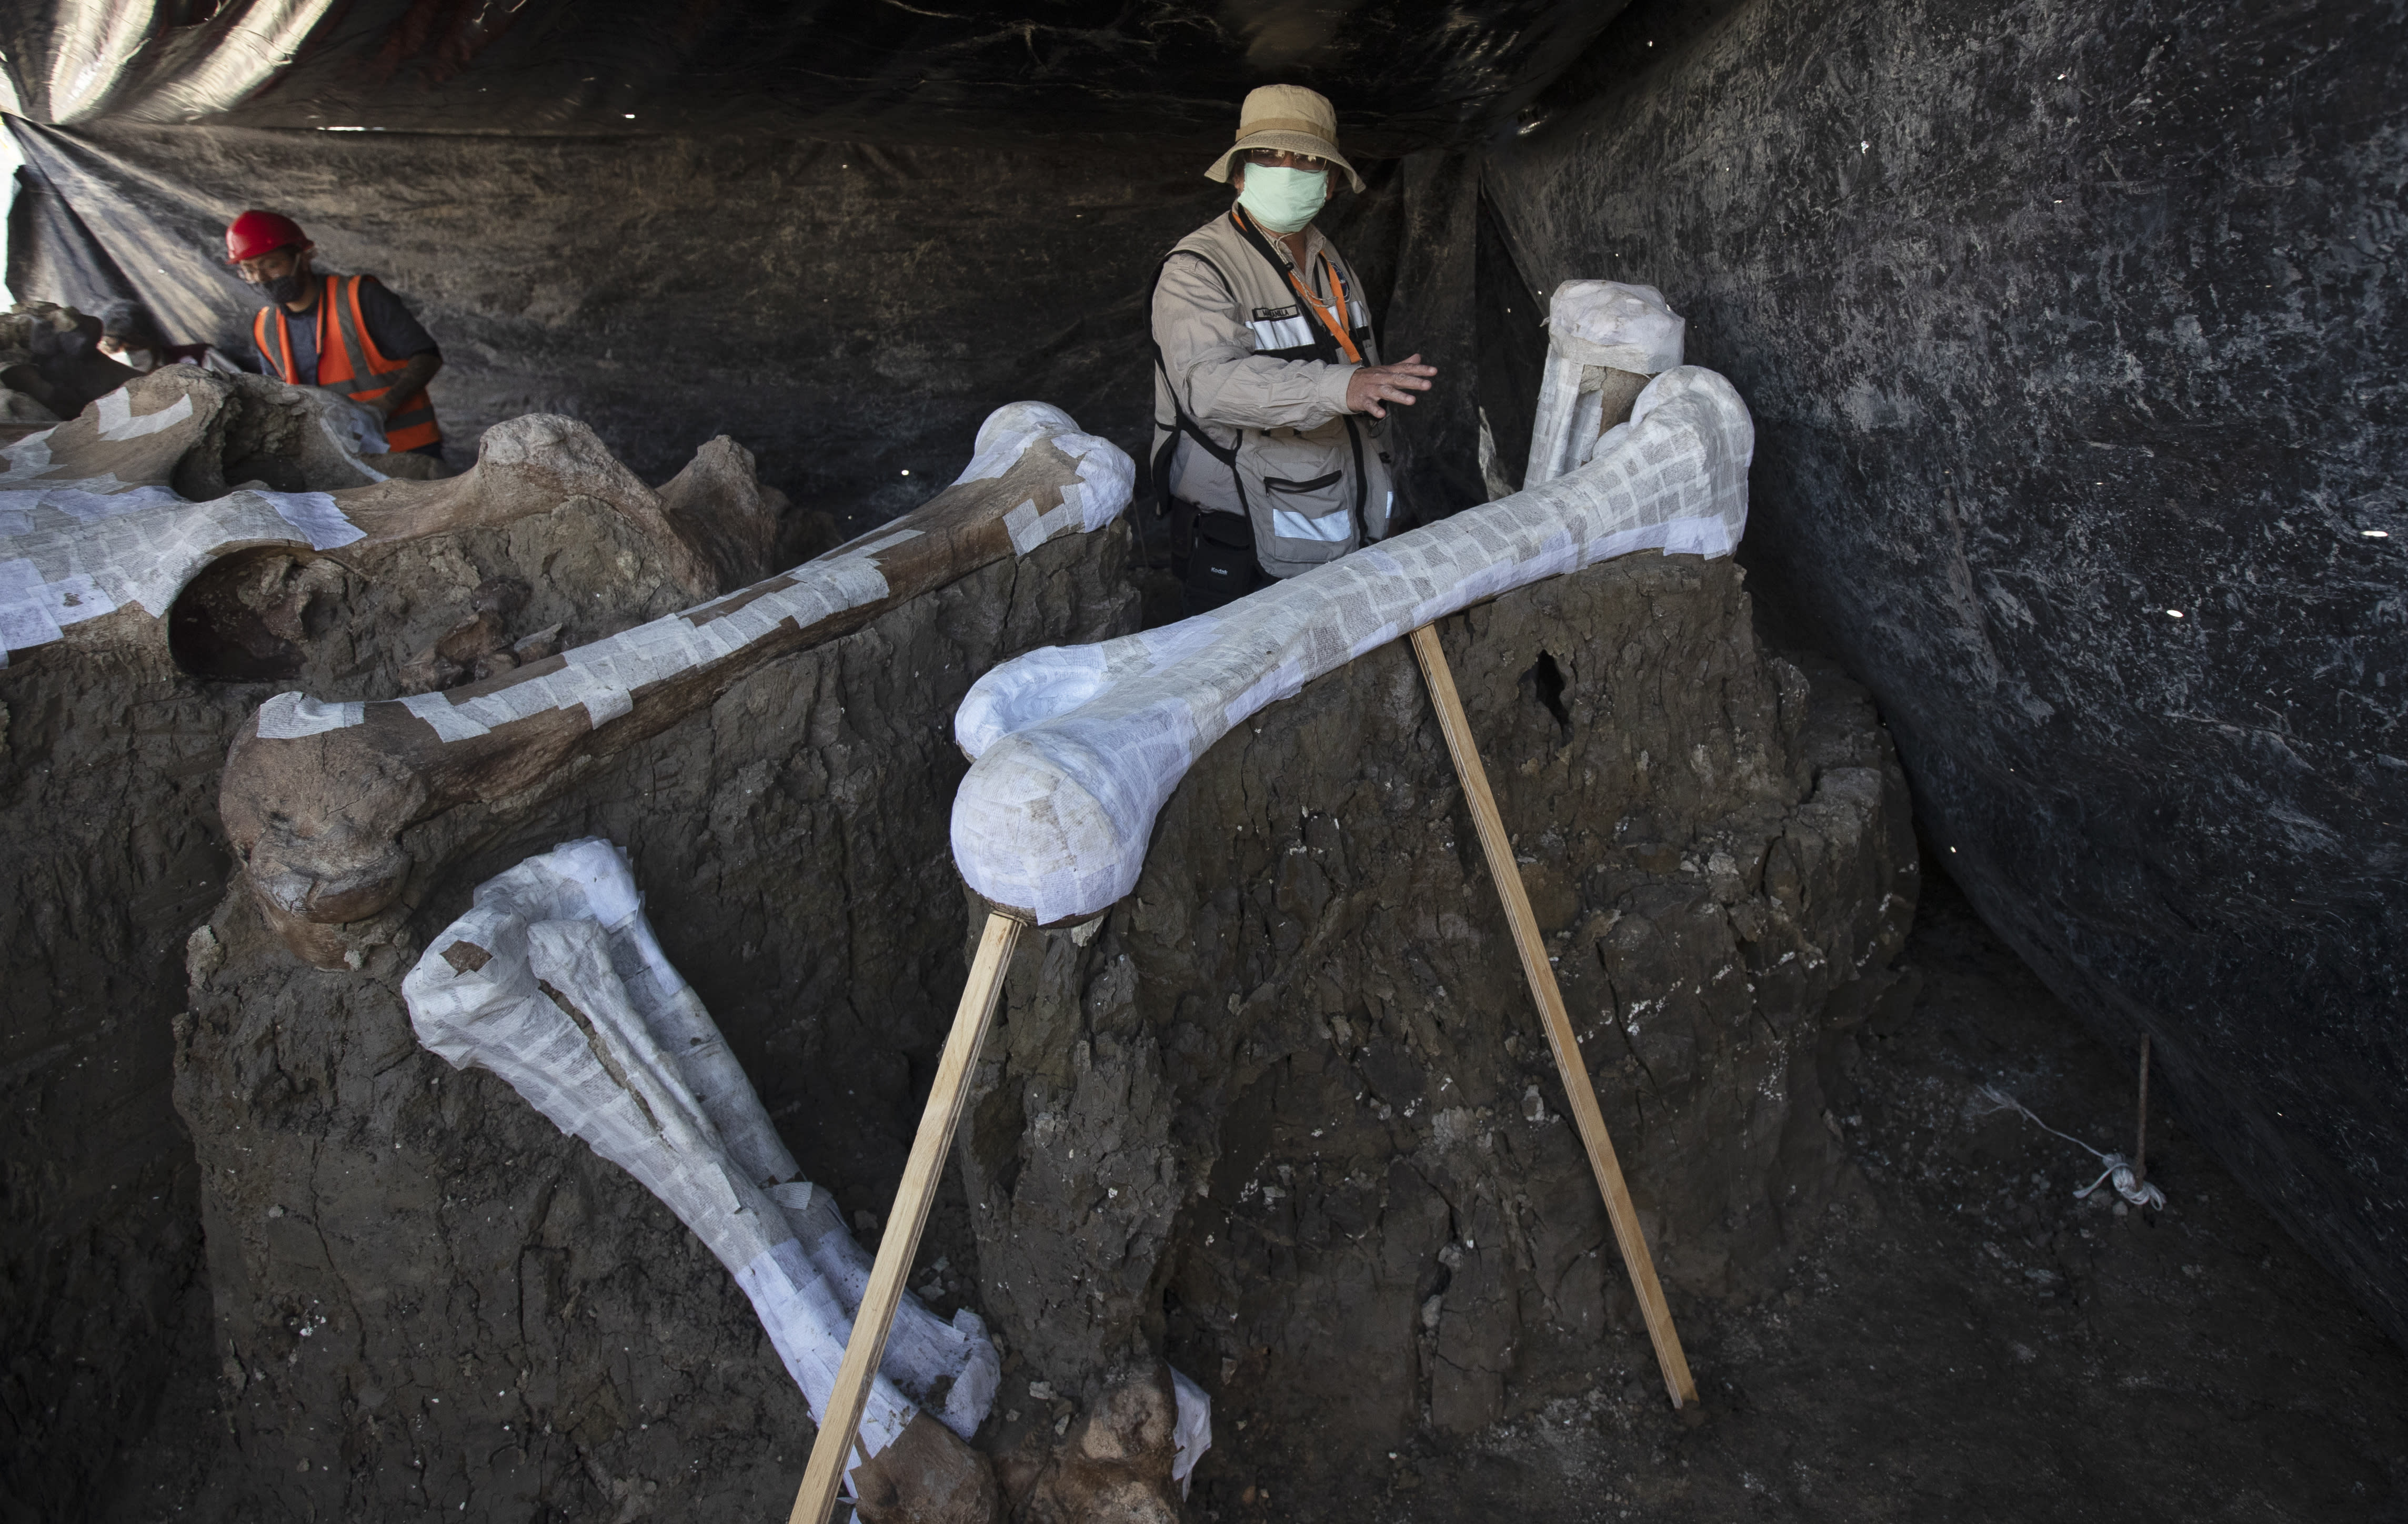 Ruben Manzanilla Lopez of the National Anthropology Institute and responsible for the preservation work in the area shows the skeleton of a mammoth that was discovered in the construction site of Mexico City's new airport in the Santa Lucia military base, Mexico, Thursday, Sept. 3, 2020. The paleontologists are busy digging up and preserving the skeletons of mammoths, camels, horses and bison as machinery and workers are busy with the construction of the Felipe Angeles International Airport by order of President Andres Manuel Lopez Obrador. (AP Photo/Marco Ugarte)